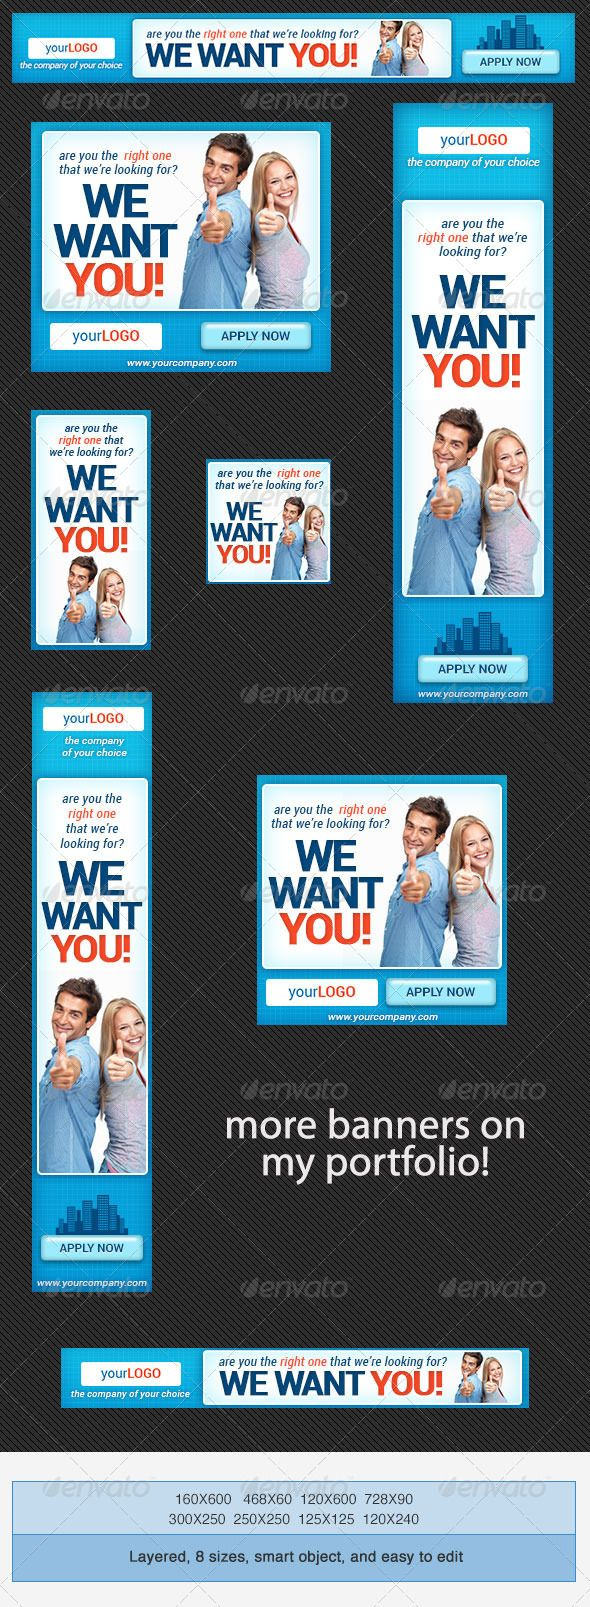 Corporate PSD Banner Ad Template 4 #GraphicRiver Here's another set of PSD Banner Ad Template Banner Ad Sizes leaderboard (728×90) banner (468×60) button (125×125) skyscraper (120×600) wide skyscraper (160×600) vertical banner (120×240) square (250×250) medium rectangle (300×250) Banner Ad Templates Usage Web Advertisement Google Adwords Online Advertising Campaign Marketing Affiliate Marketing Business and Finance Business and Commercial Insurance Corporate Law Strategy Planning Outsourcing…